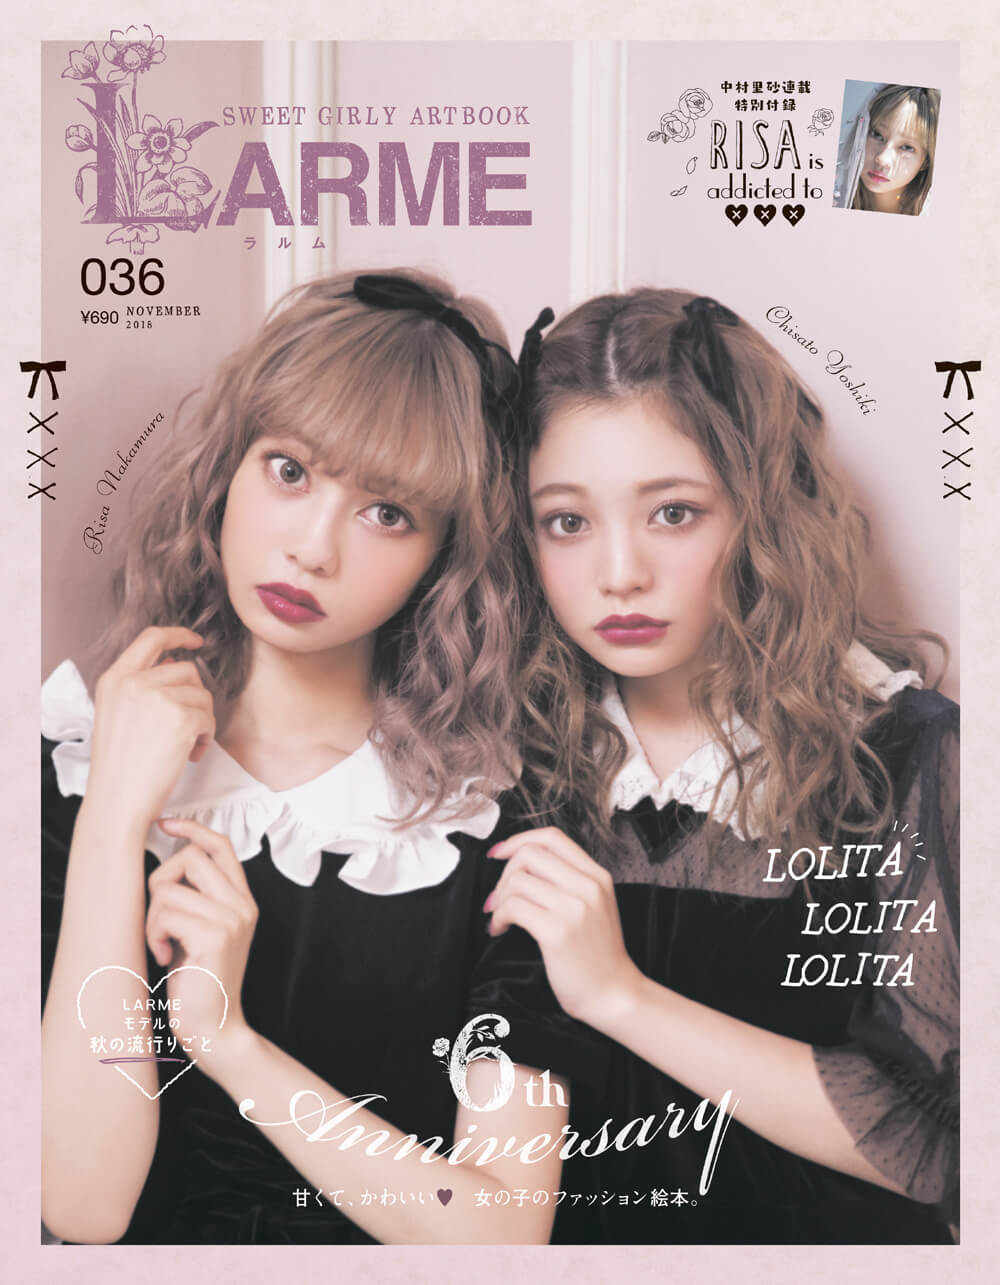 Discover Japan's Autumn Fashion Trends in LARME Magazine in